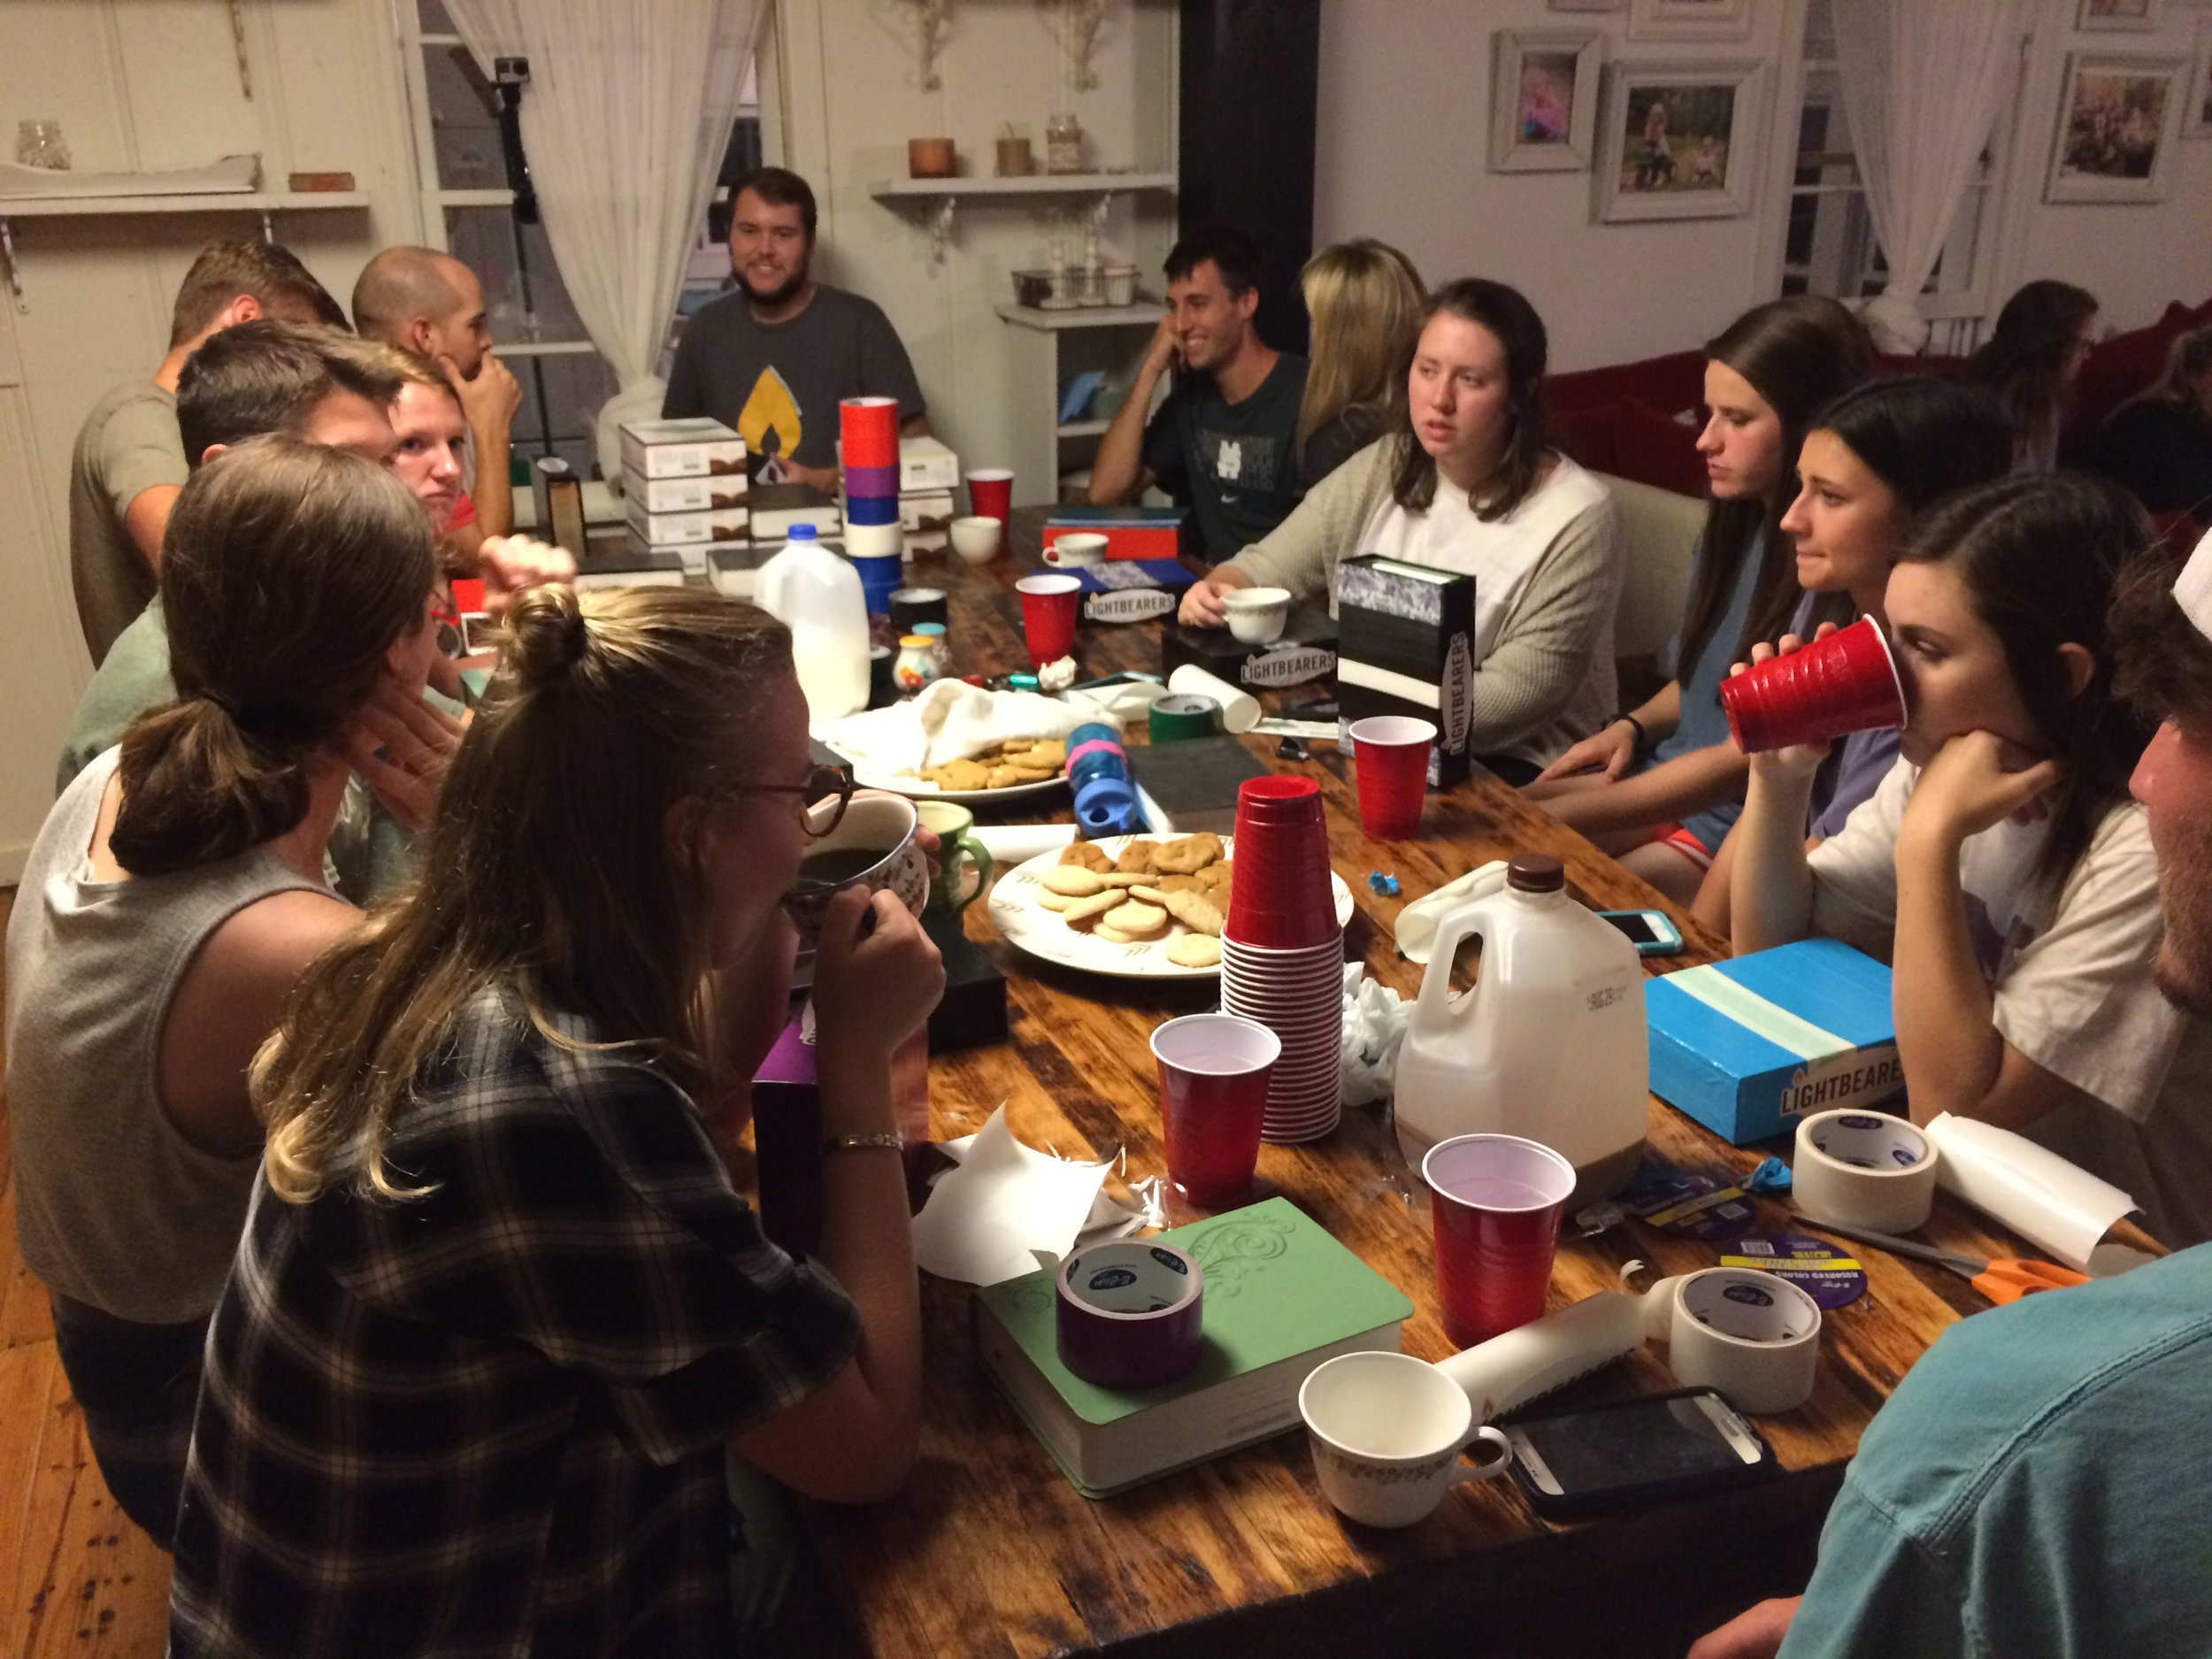 Milk, cookies, awesome people and God's word...that's hard to beat!